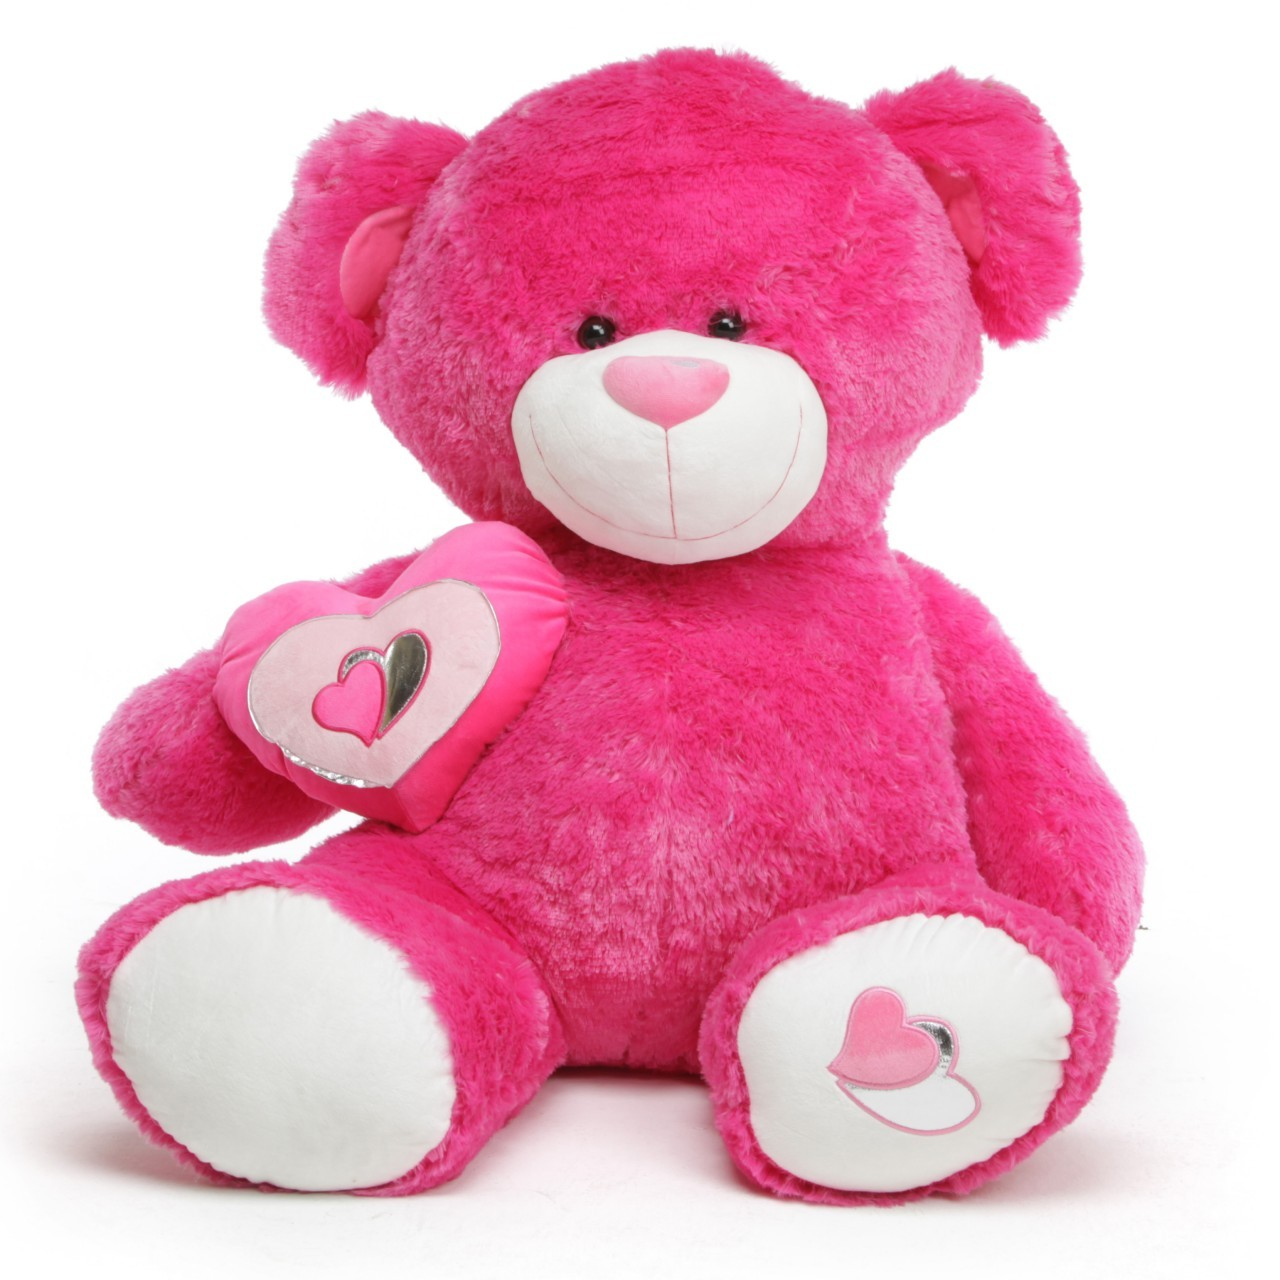 Big Pink Teddy Bear Wallpapers